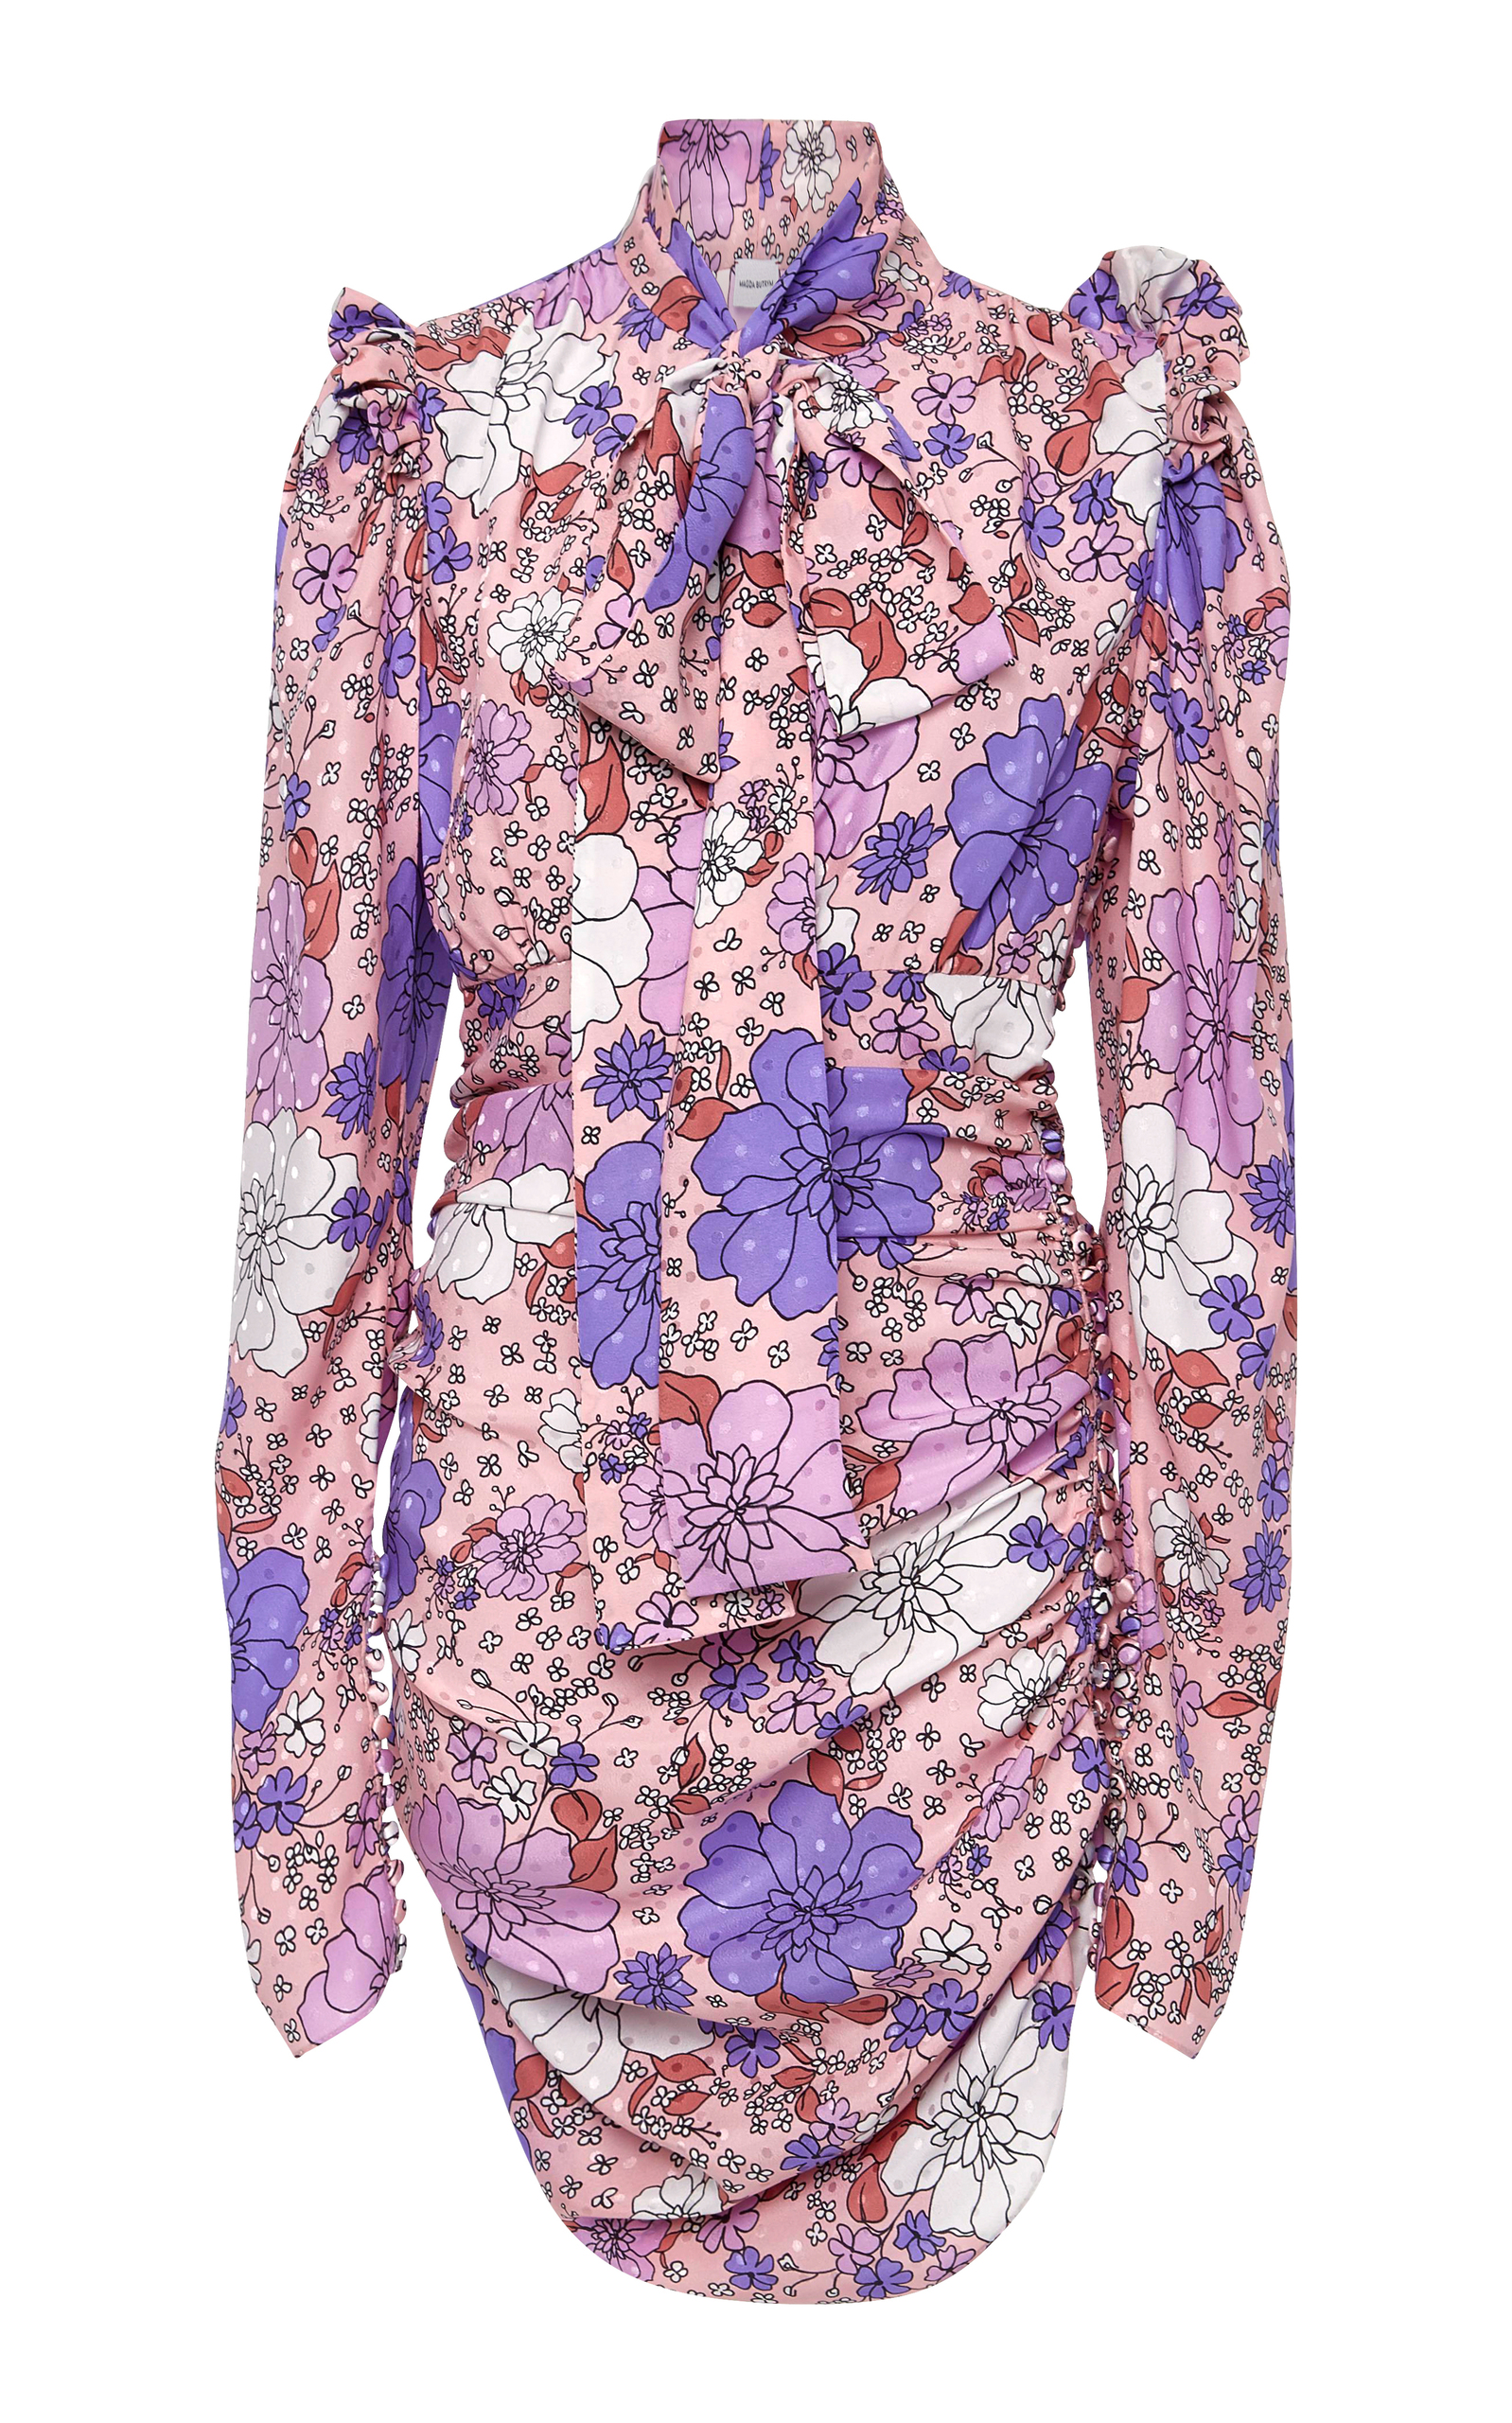 Silk Neck Tie Floral Mini Dress - Pink & Purple Magda Butrym A8ggV31O